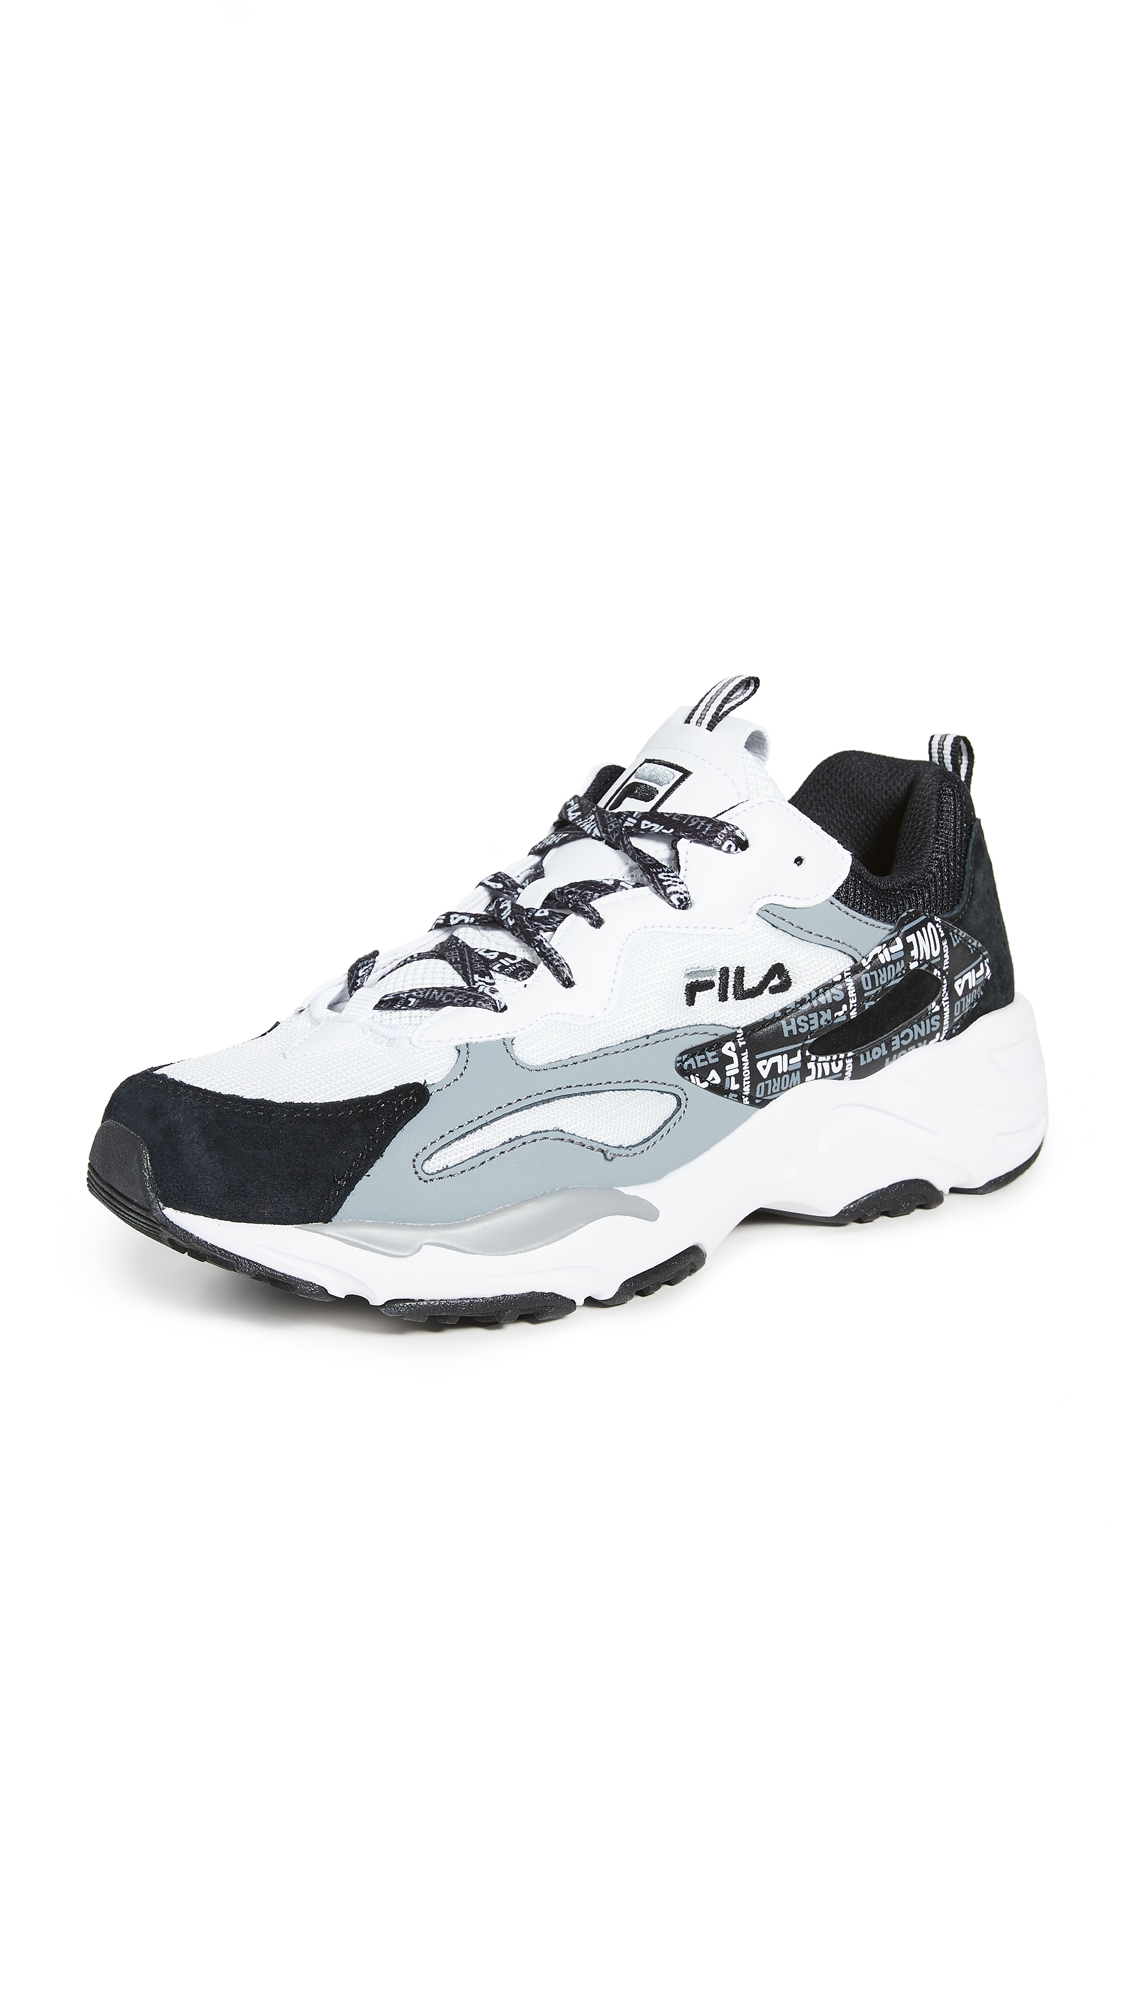 Fila Sneakers RAY TRACER TRADEMARK SNEAKERS